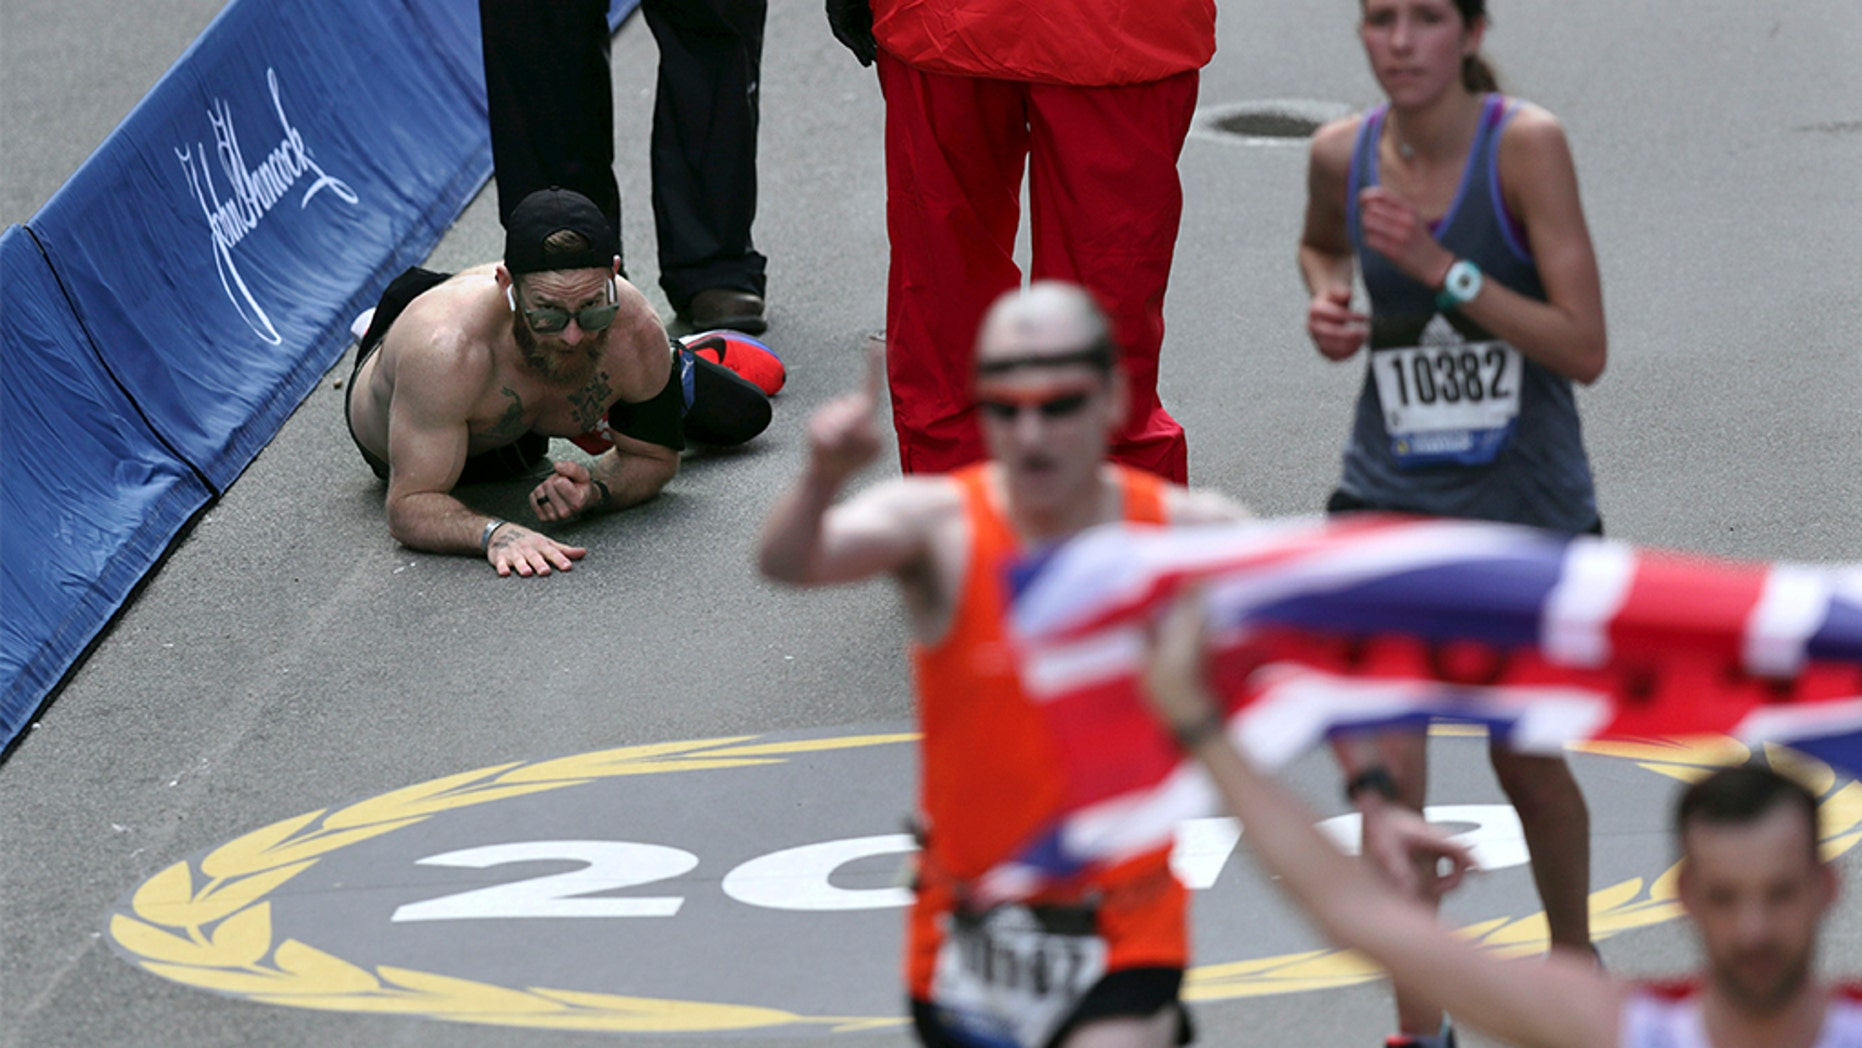 Micah Herndon, a Marine who served in Iraq and Afghanistan, crawled across the finish line of the Boston Maraton on Monday.